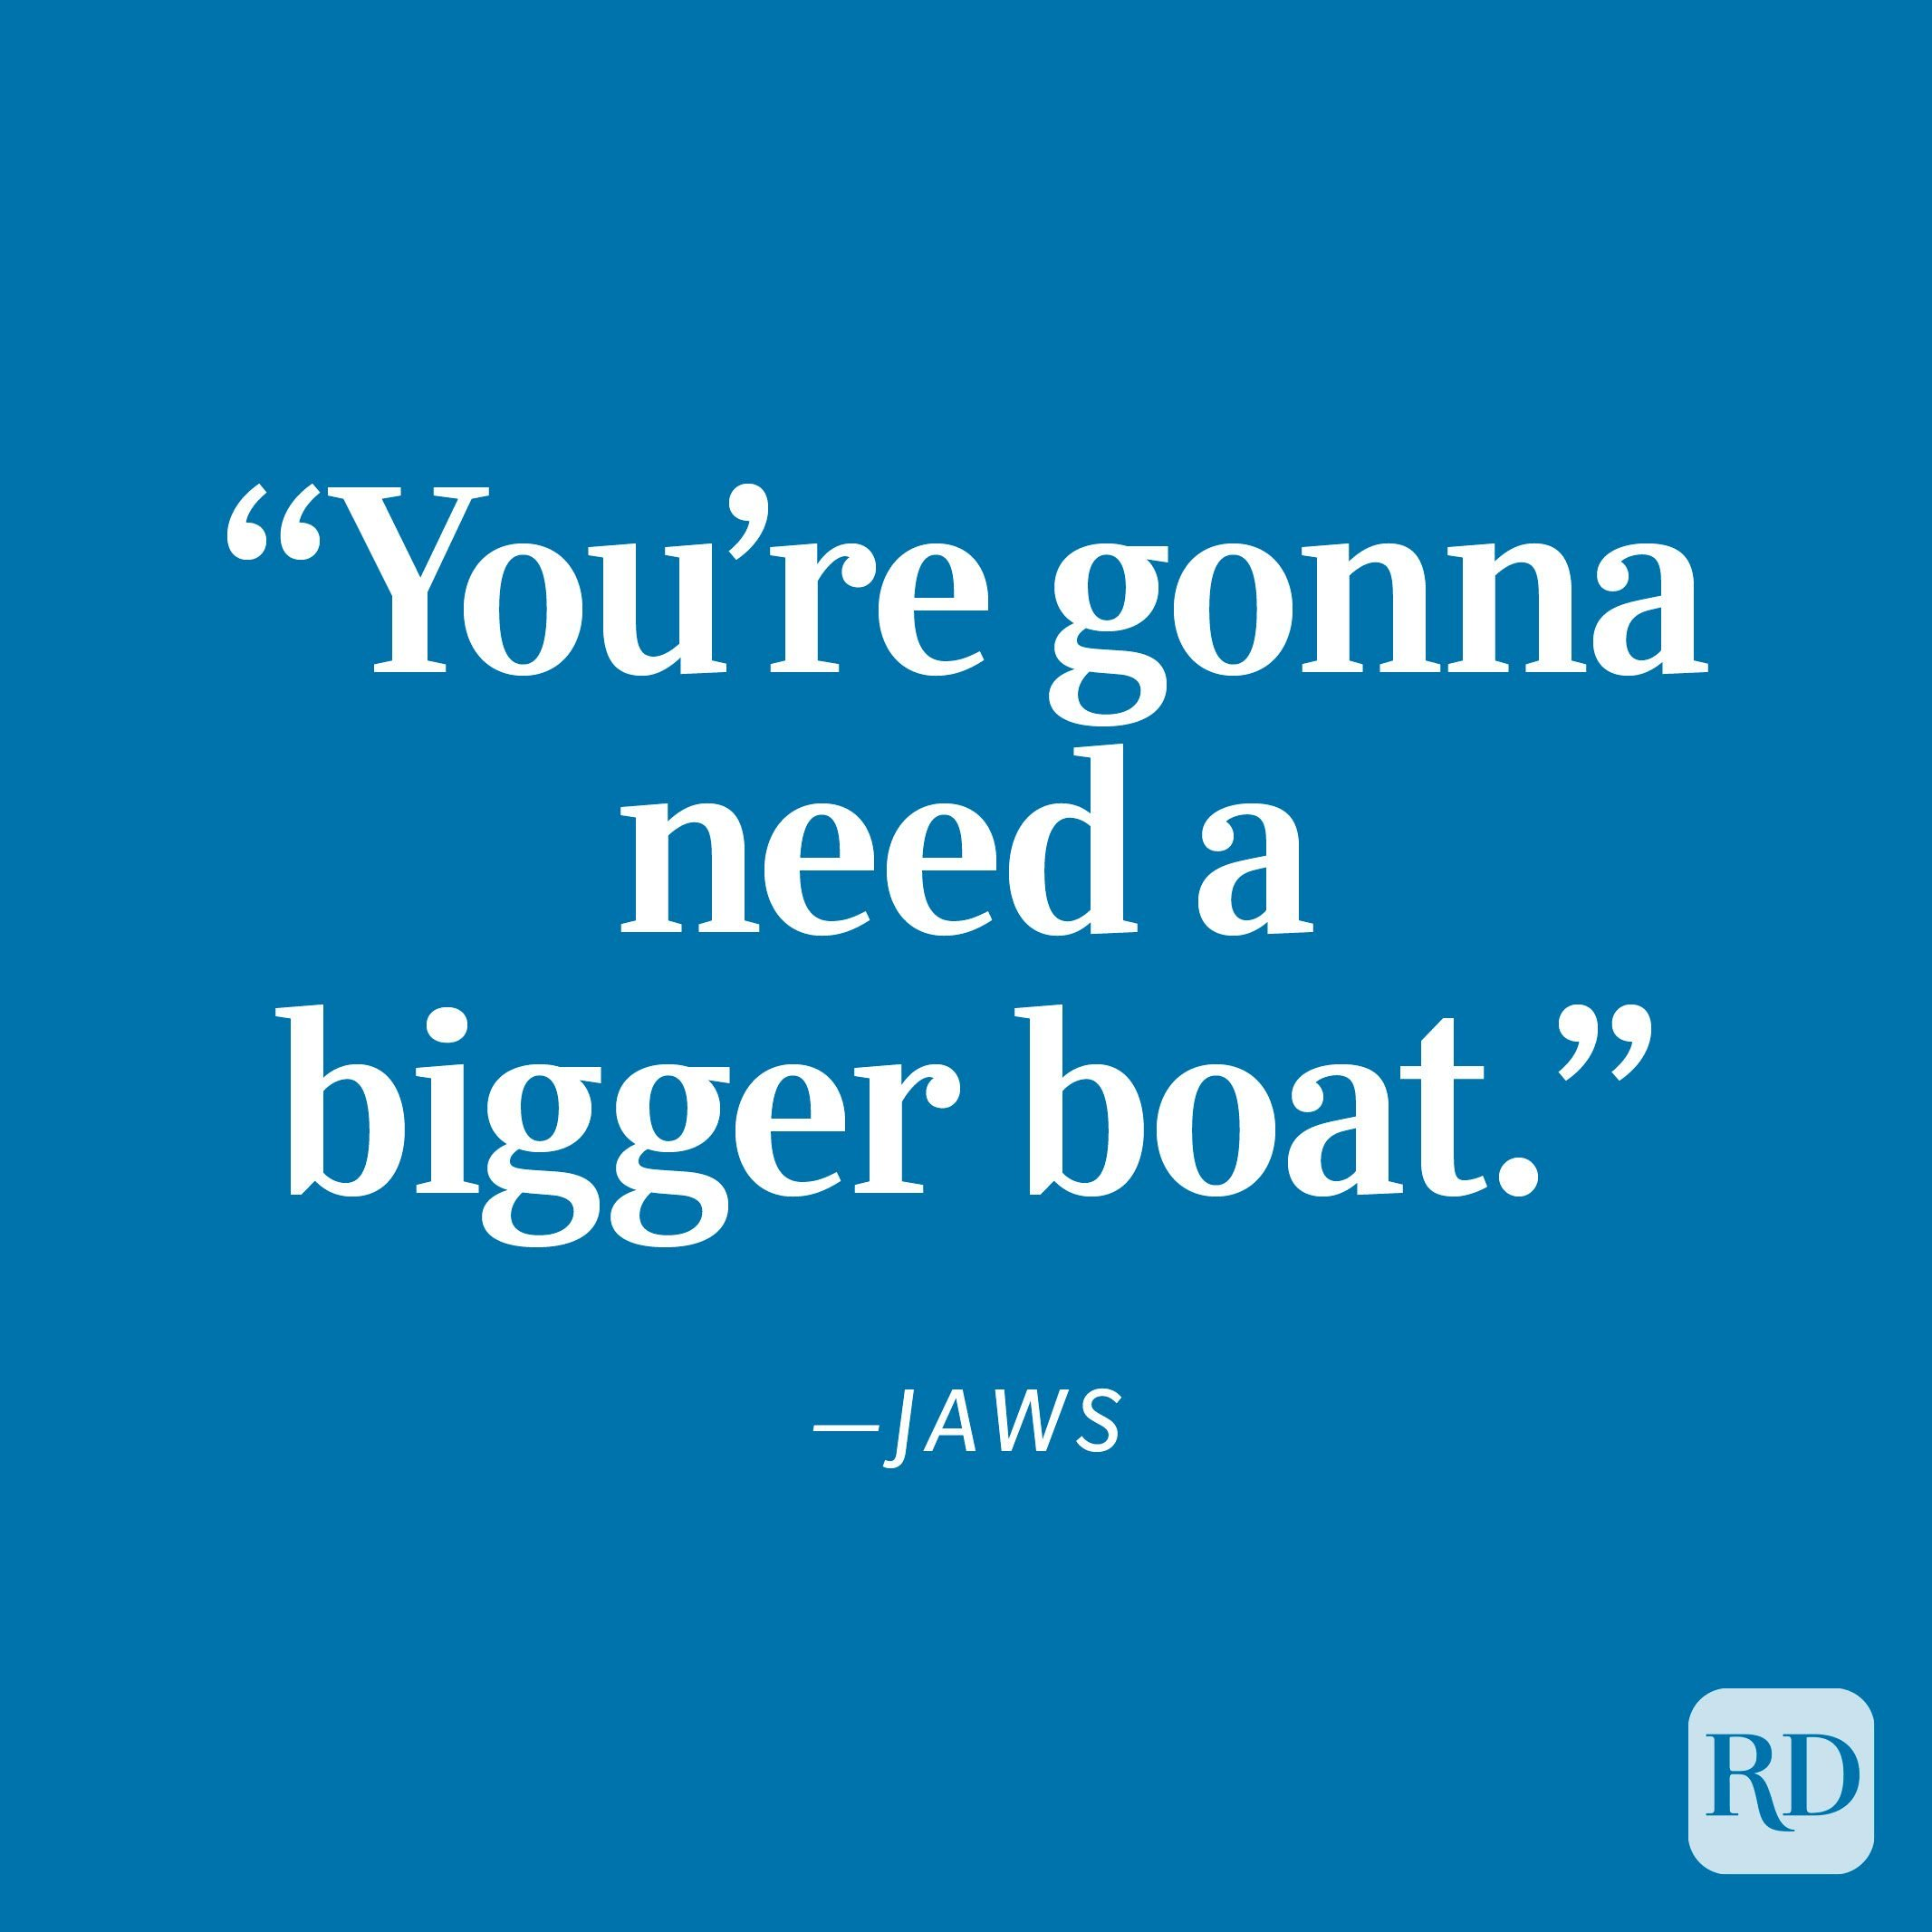 """Jaws """"You're gonna need a bigger boat."""""""